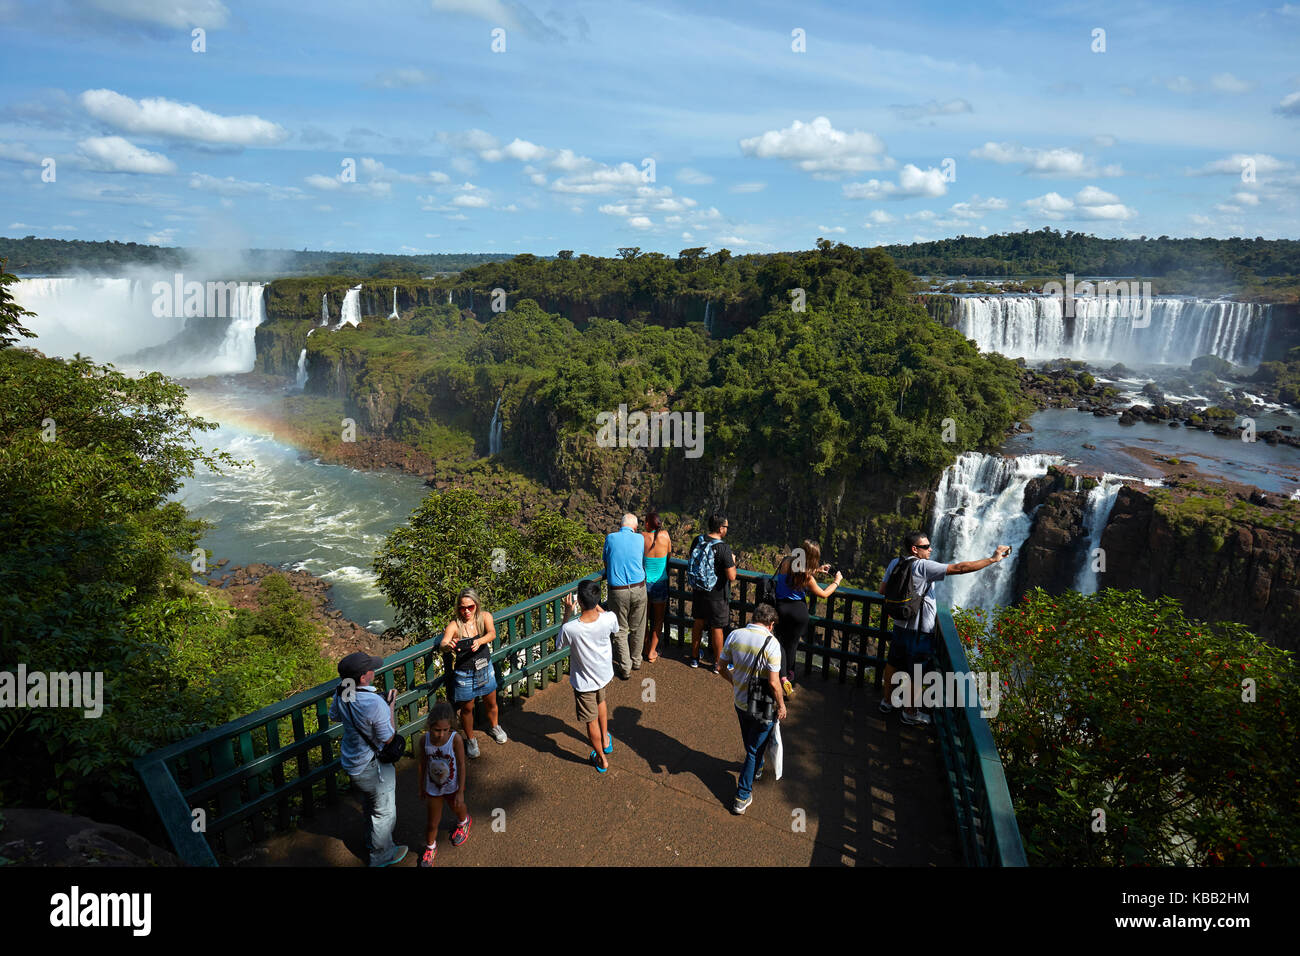 Tourists on viewing platform on Brazil side of Iguazu Falls, looking at Argentinian  side, South America Stock Photo